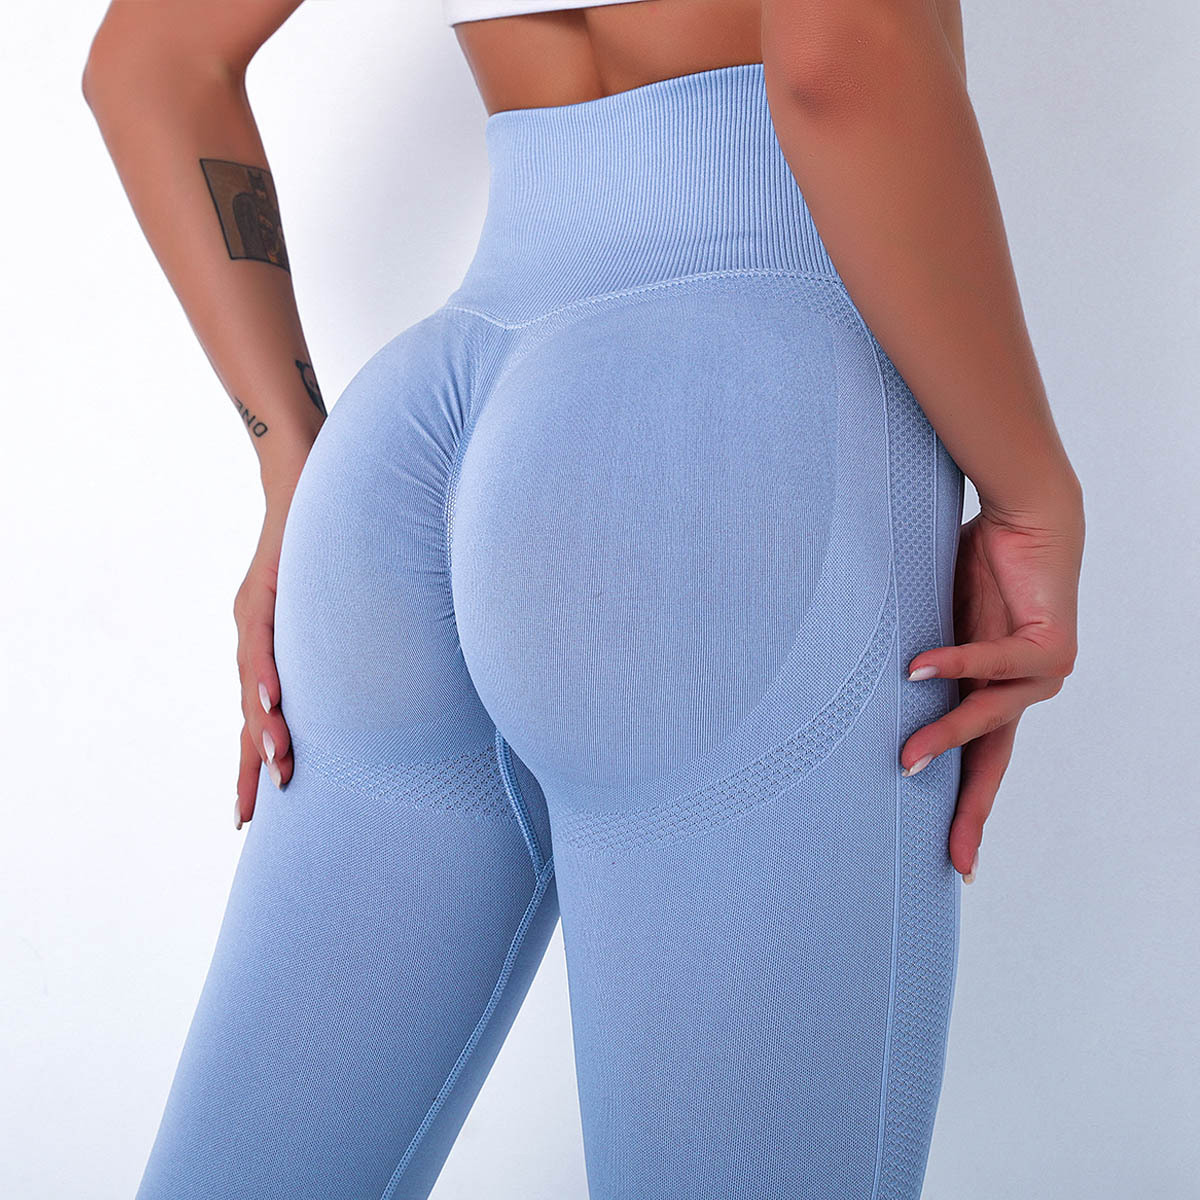 High Waist Seamless Yoga Pants Bubble Butt Push Up Sport Leggings Gym Fitness Compression Tights Workout Running Trousers Special Offer Bca1d Cicig